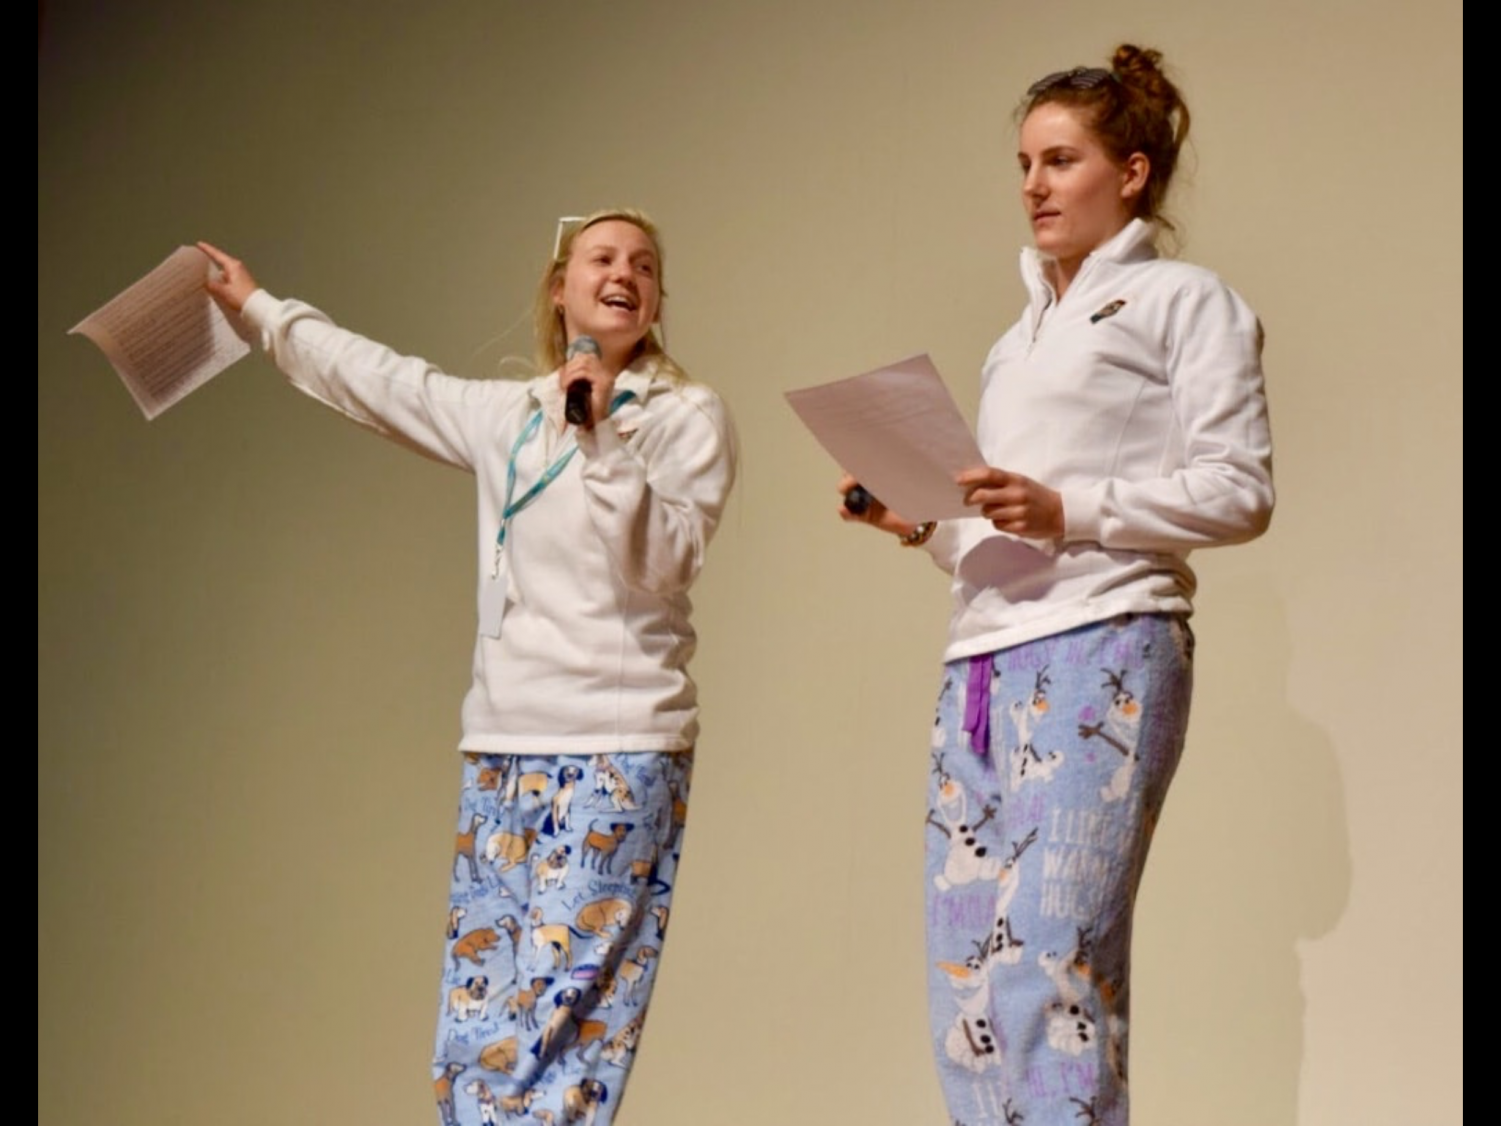 The Student Council president, senior Mary Doman, along with Sweepstakes committee member and senior officer Catie Coffman, encourage students to sell Sweepstakes tickets at the assembly after the conclusion of the MTV-themed video.